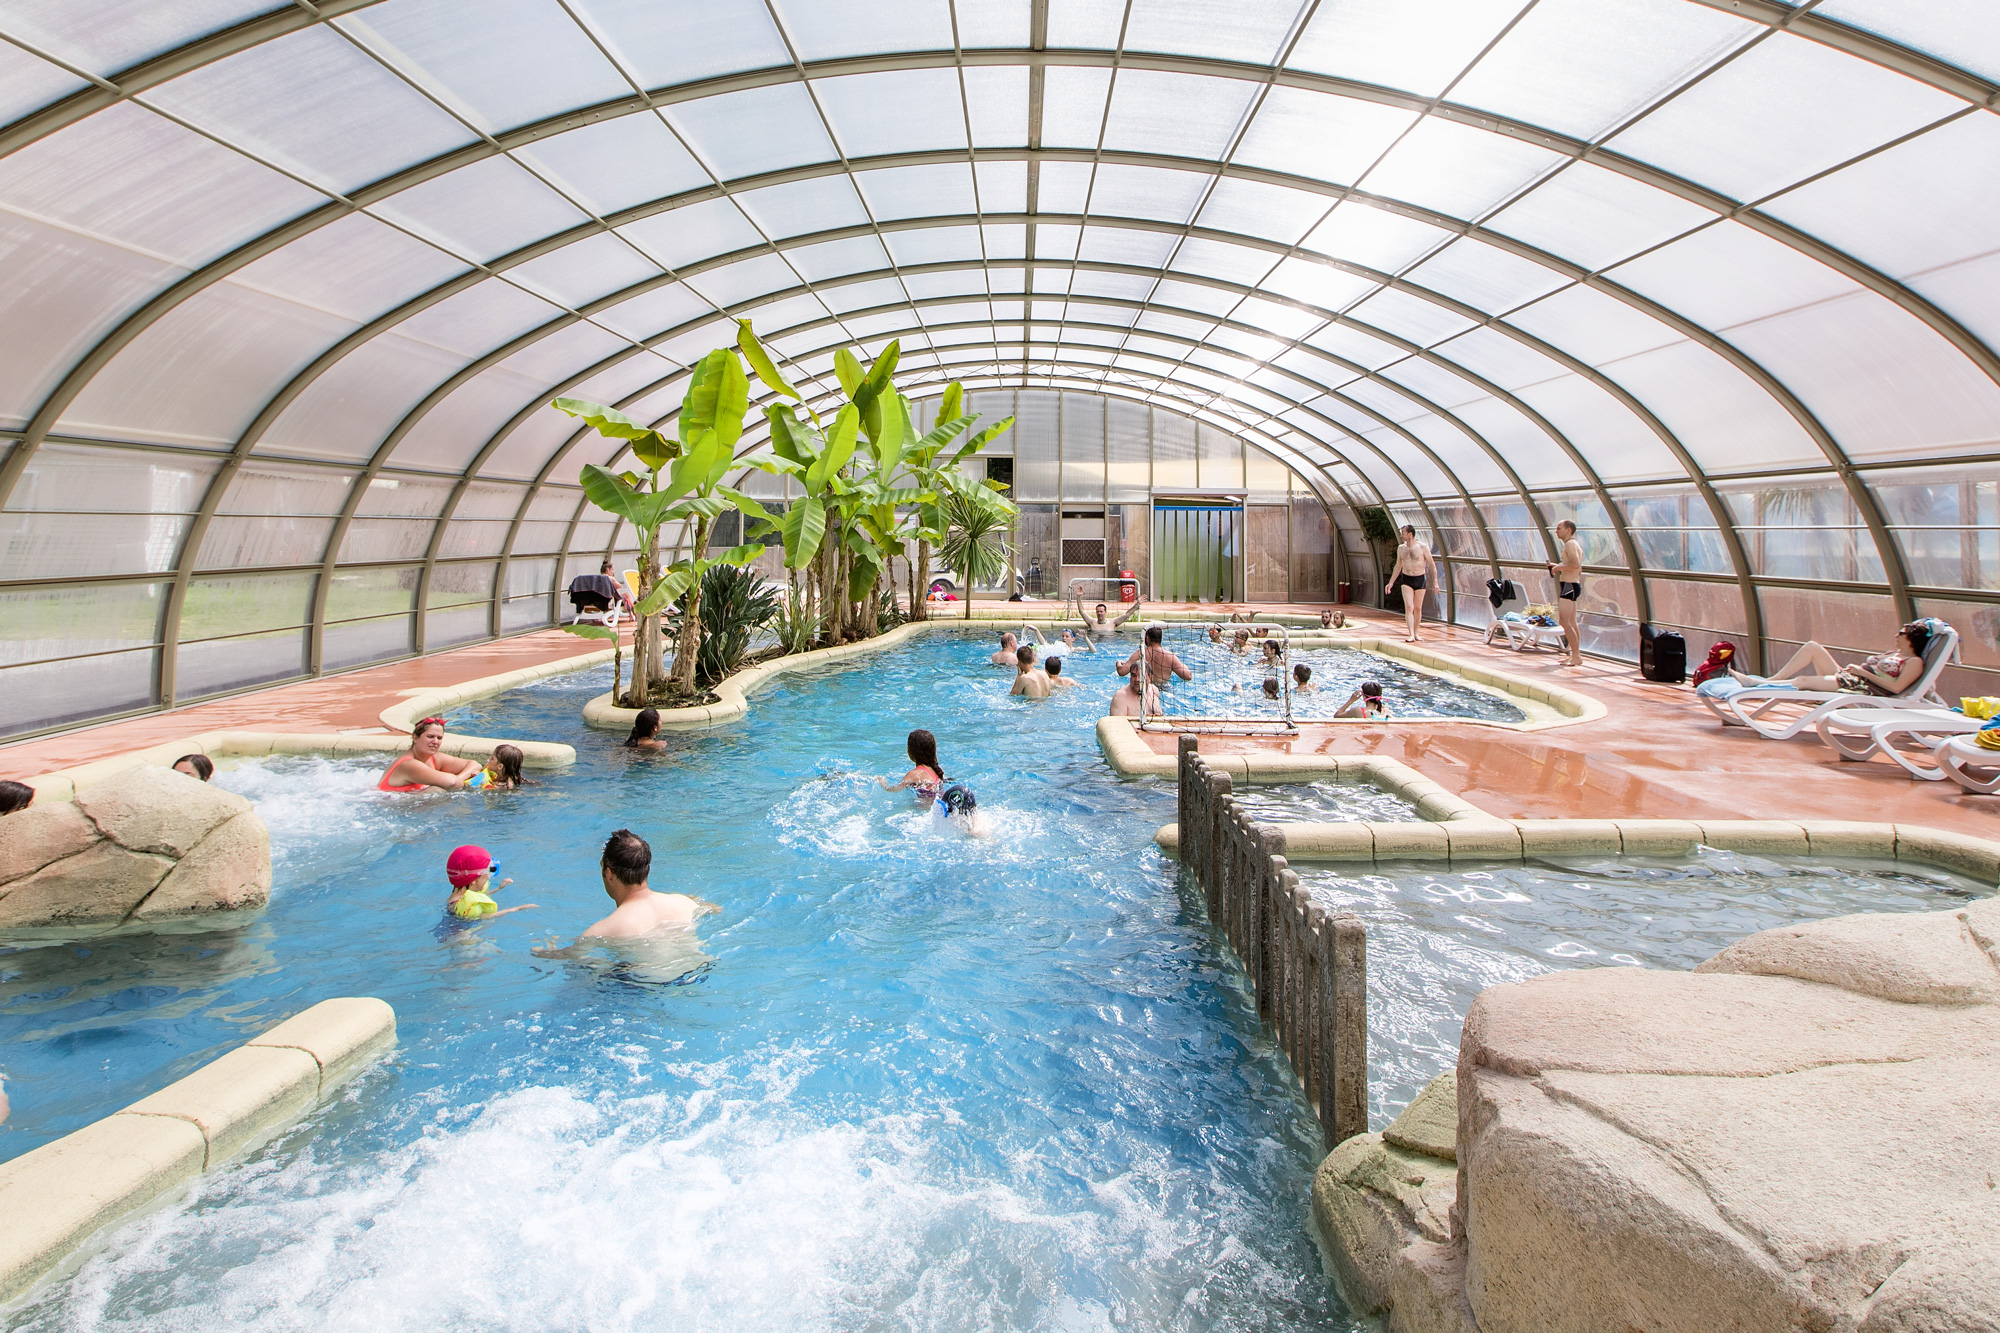 Camping piscine chauff e saint malo complexe aquatique for Camping a paris avec piscine